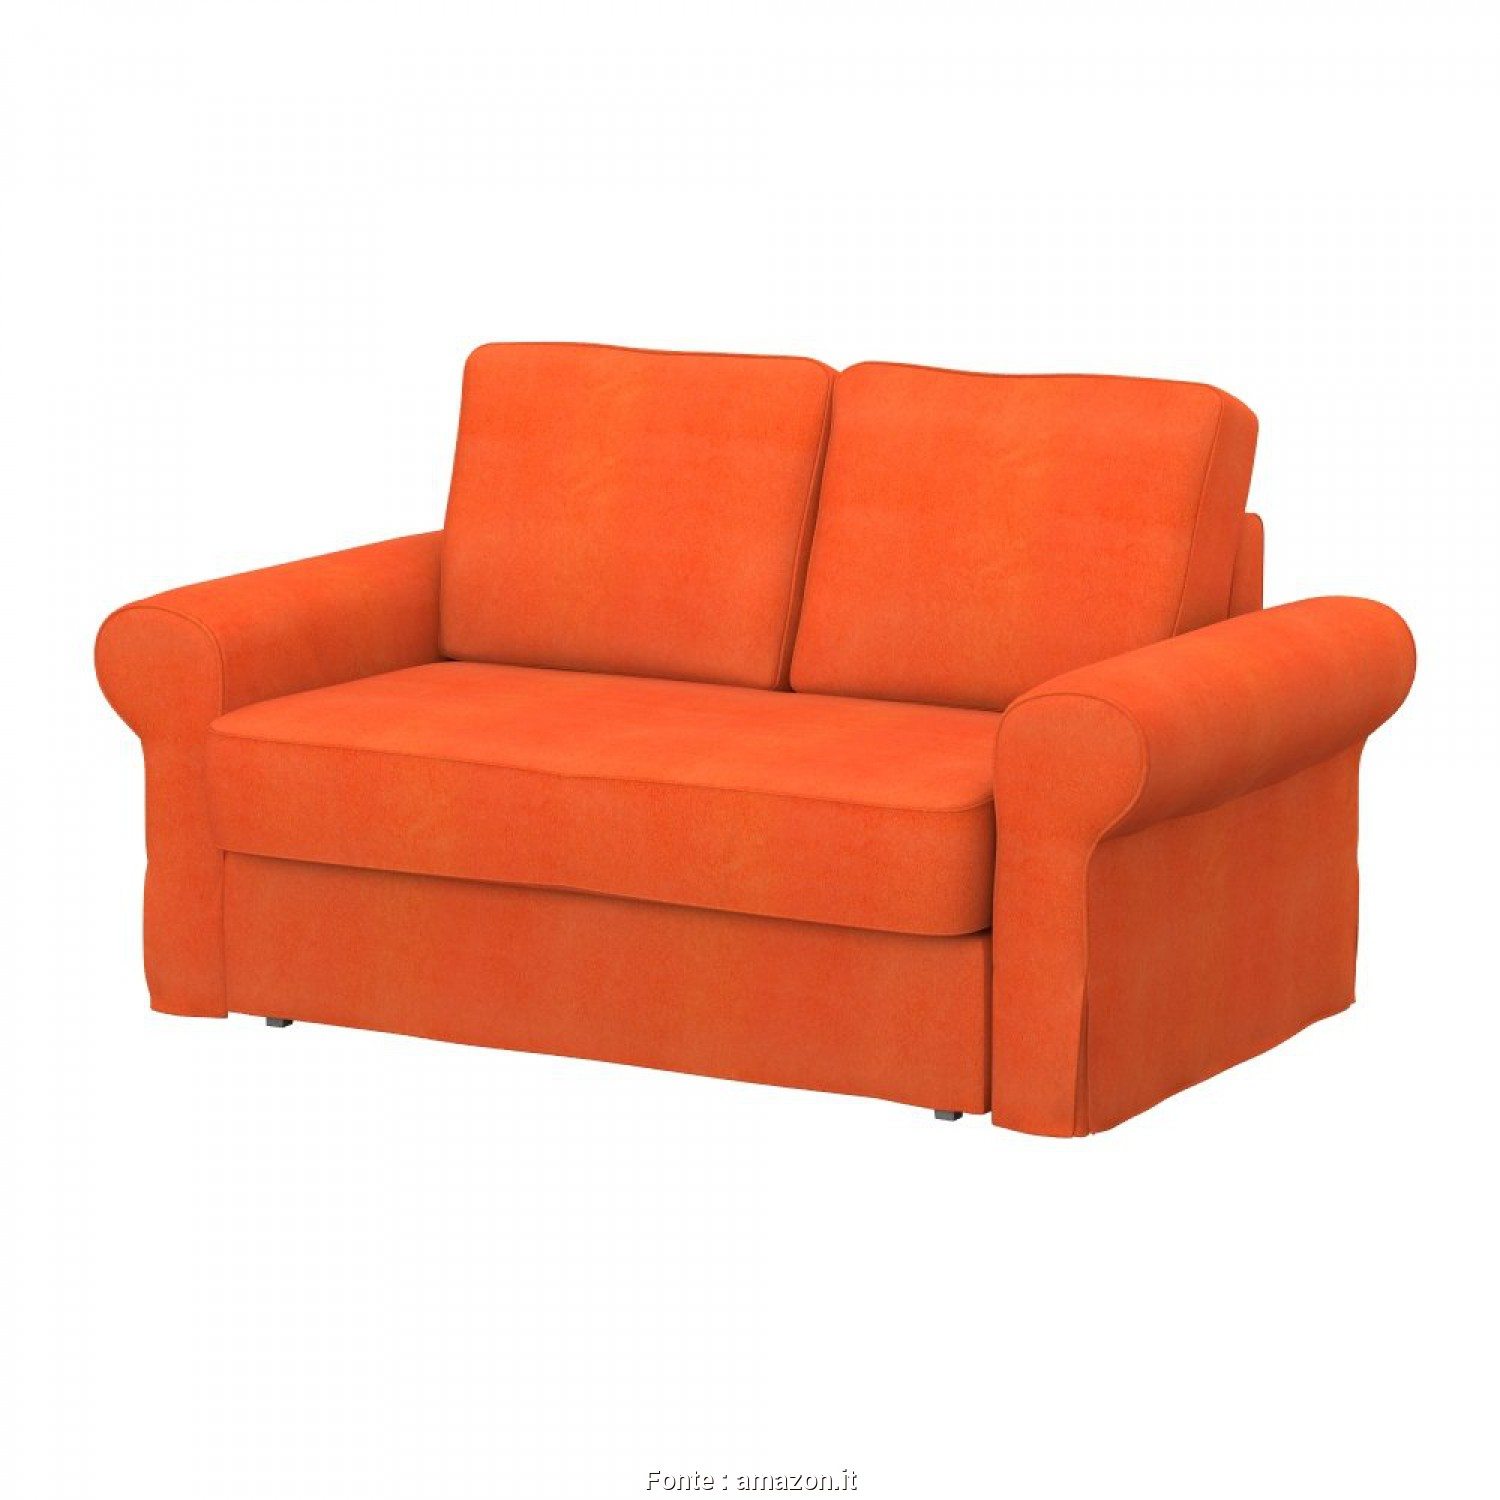 Divano Letto Ikea Backabro 2 Posti, Classy Soferia, IKEA BACKABRO Fodera, Divano Letto, Posti, Soft Orange: Amazon.It: Casa E Cucina